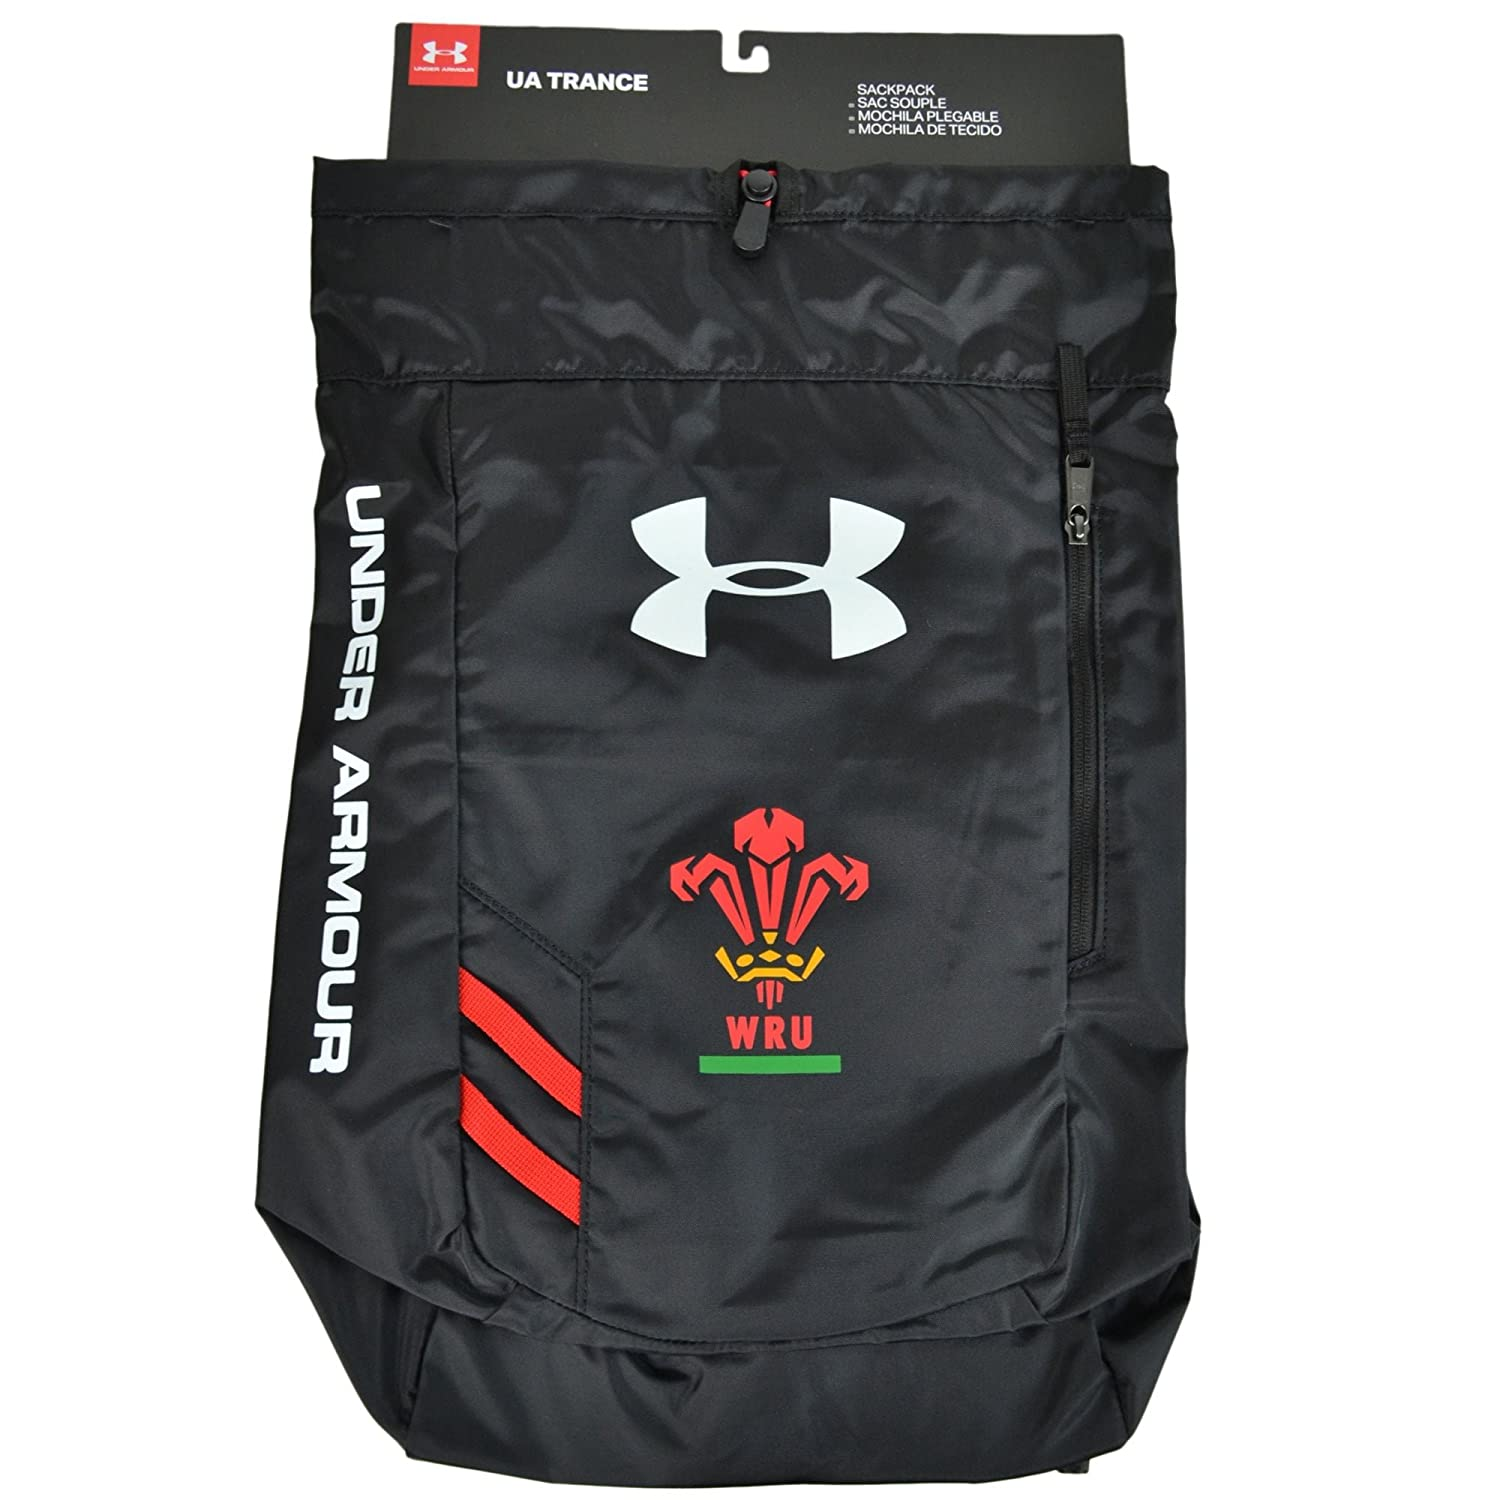 Amazon.com: Under Armour 2018-2019 Wales Rugby WRU Trace Gym Bag (Black): Sports & Outdoors